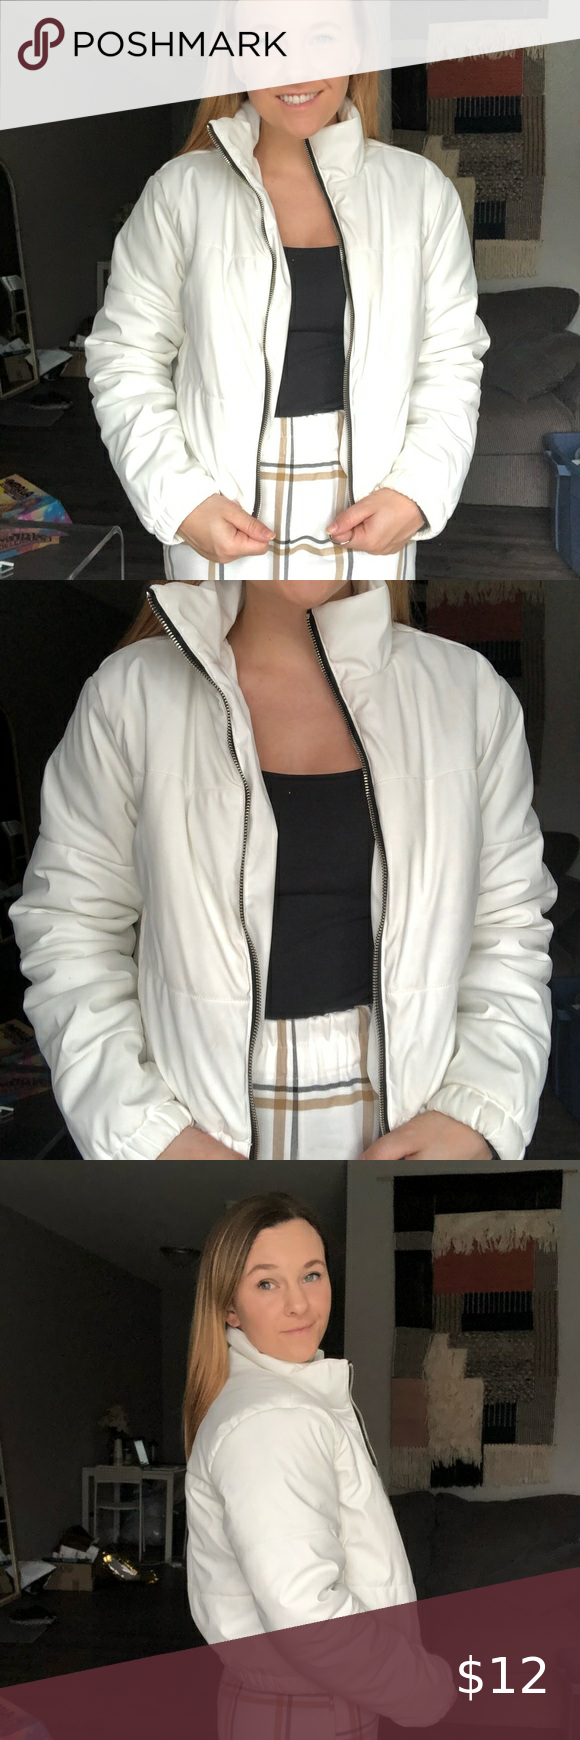 Wild Fable White Puffer Jacket White Puffer Jacket Early Spring Outfits Jackets [ 1740 x 580 Pixel ]